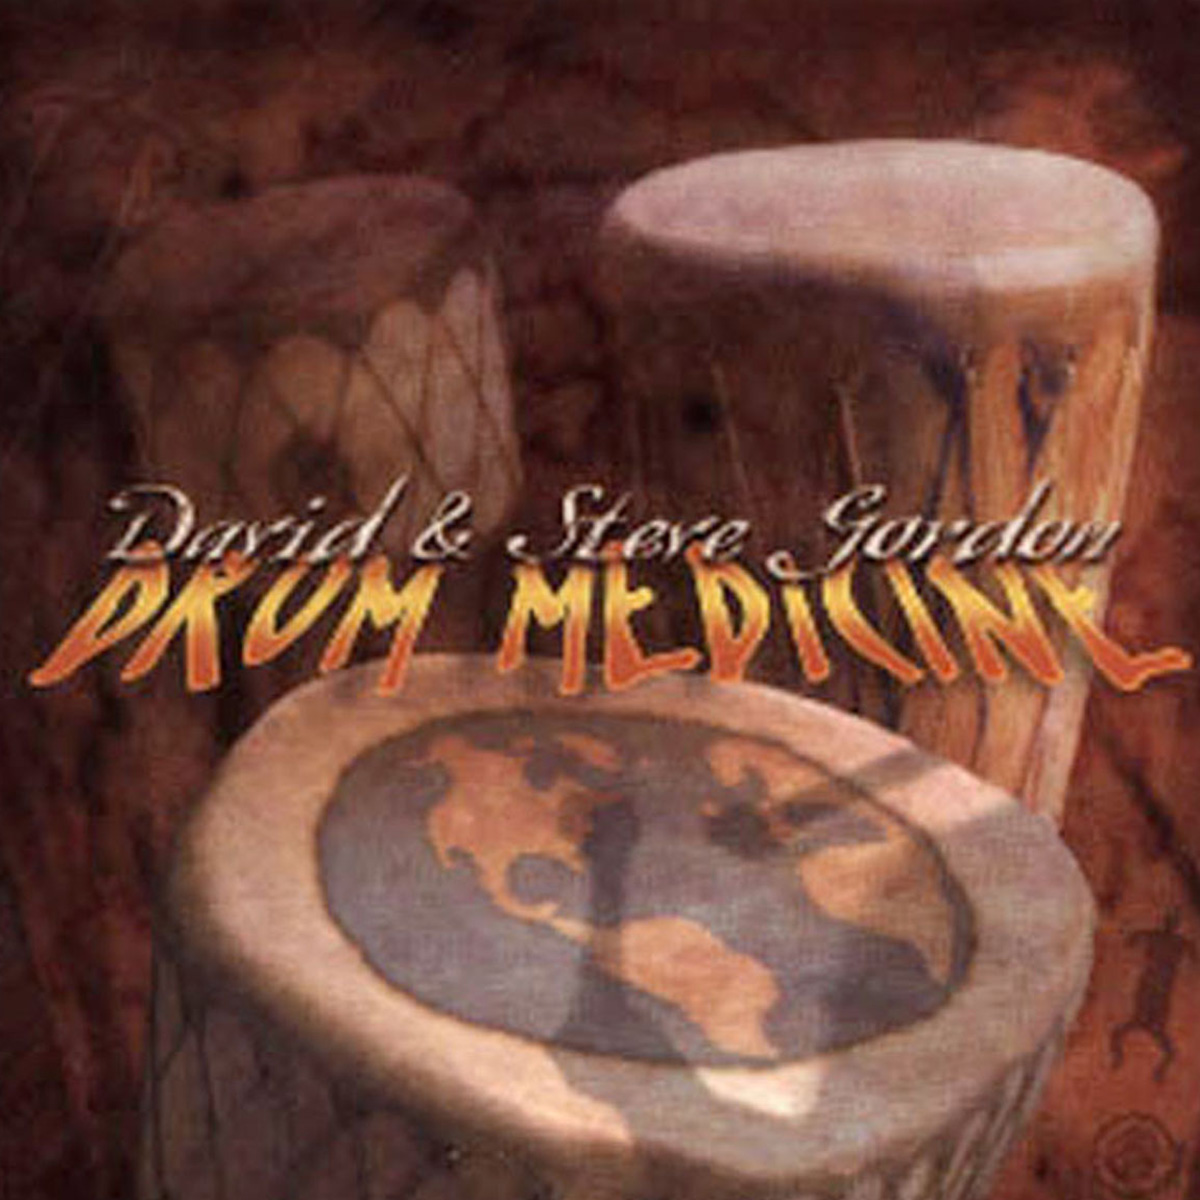 Drum Medicine von Gordon, David & Steve